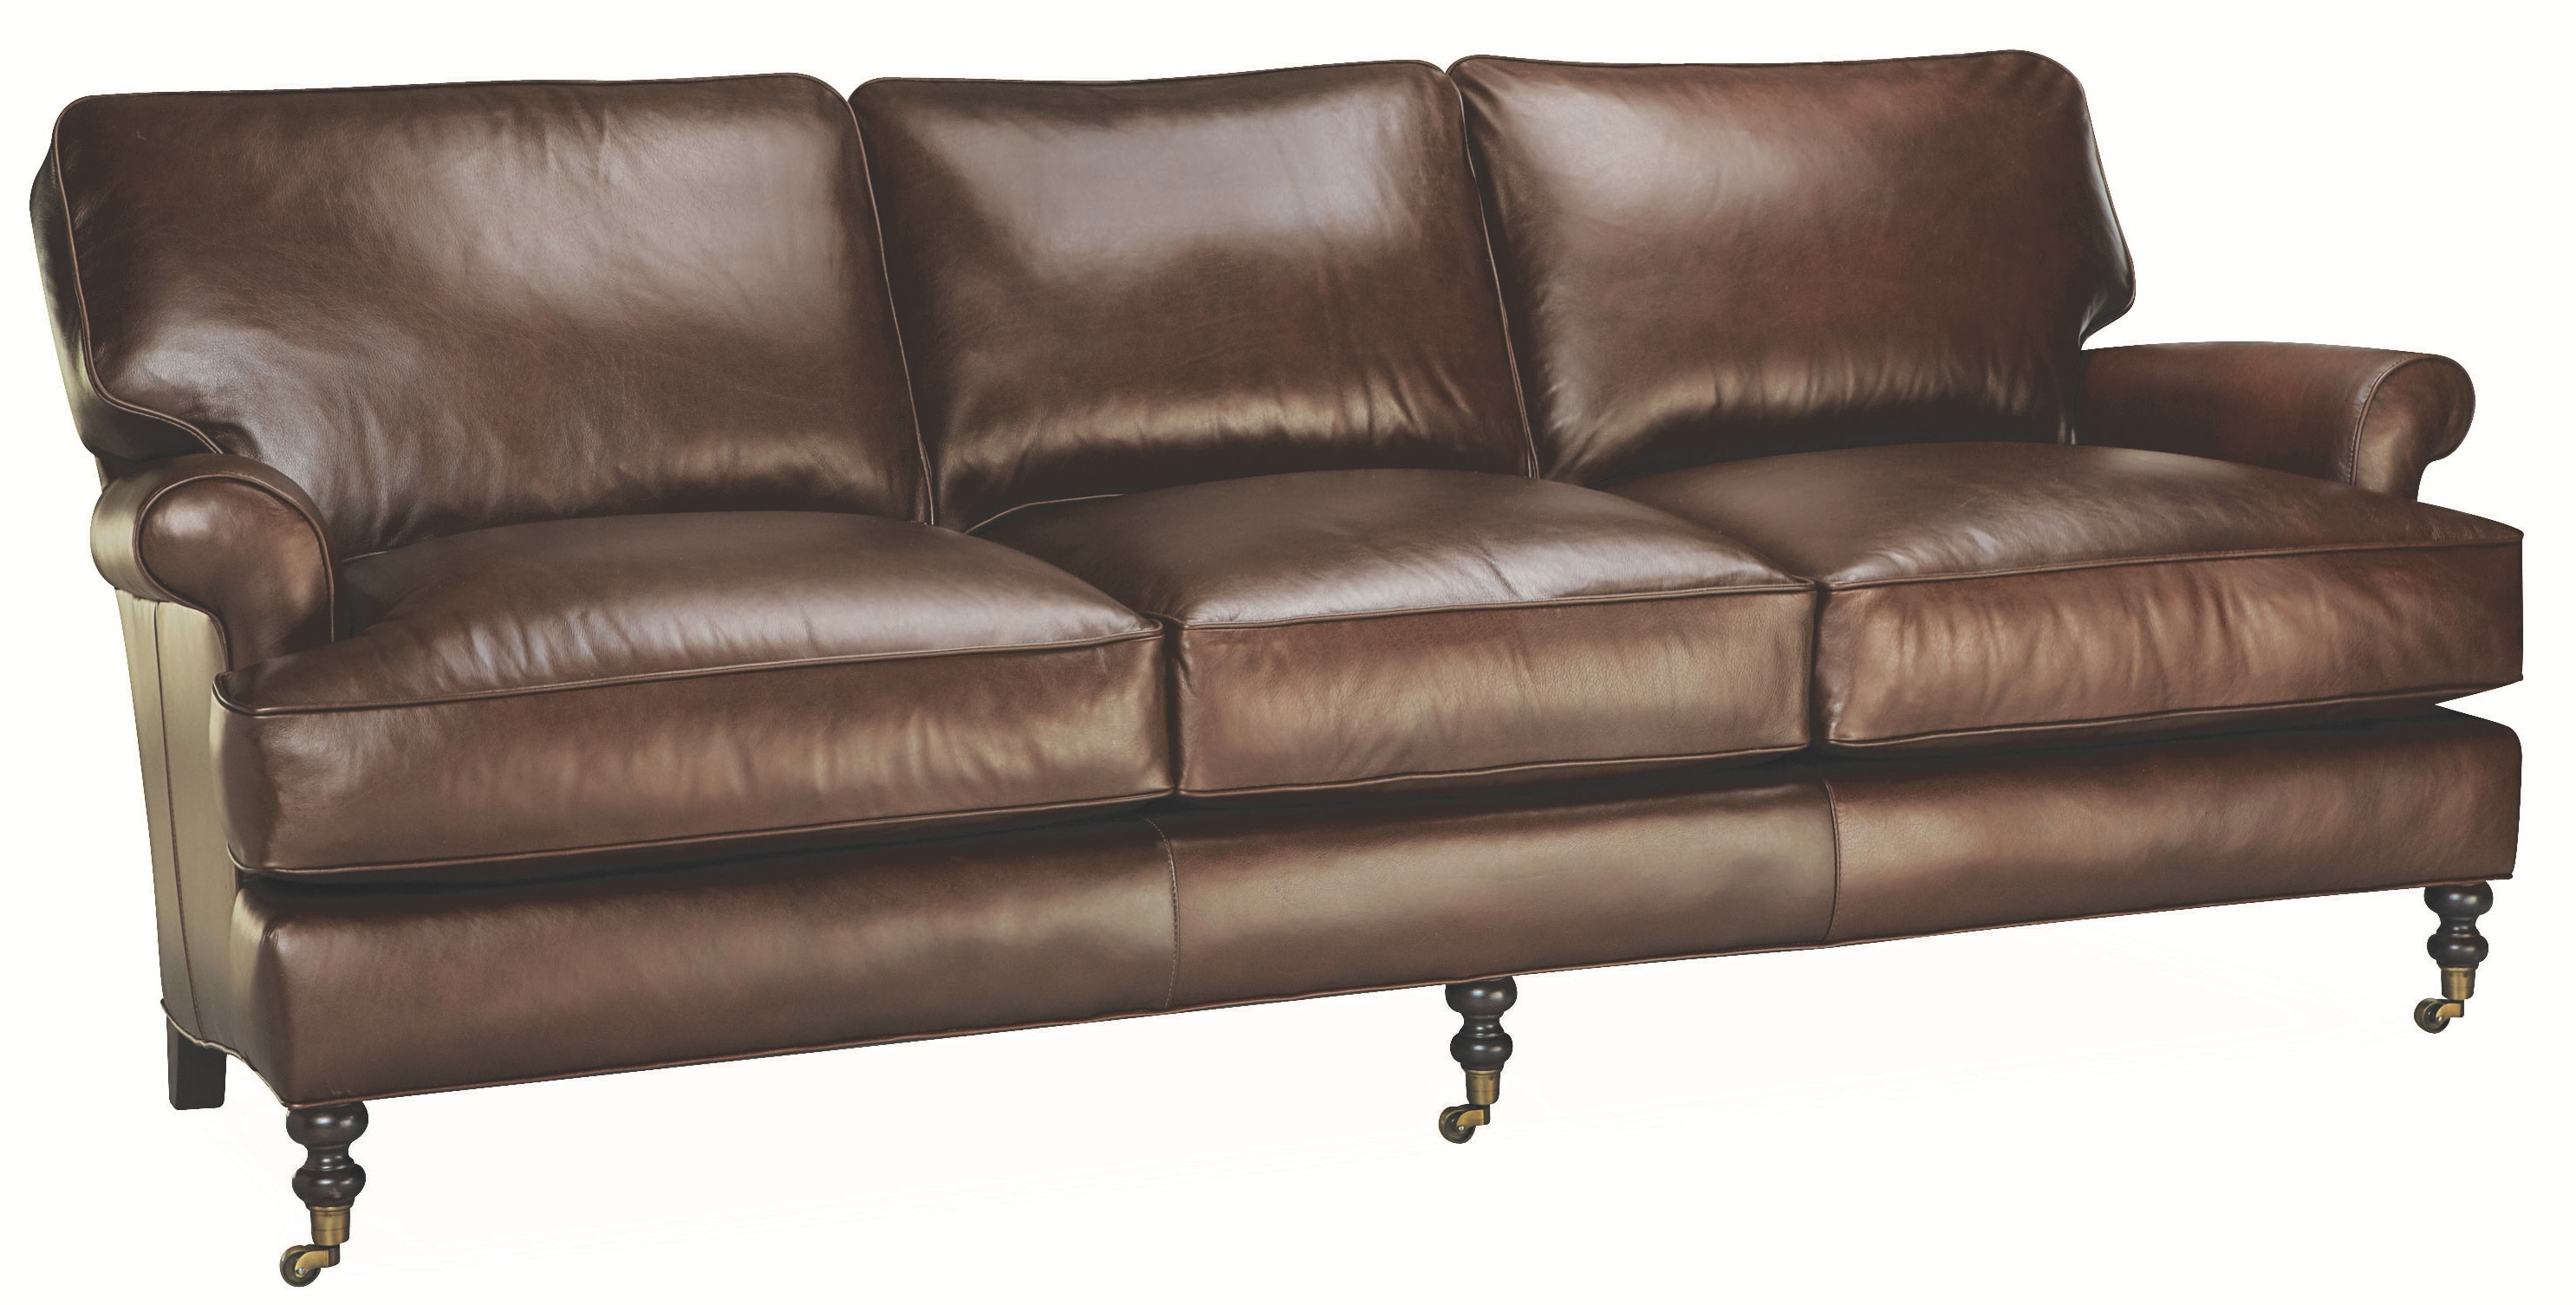 lee industries leather sofa small single beds living room l3895 03